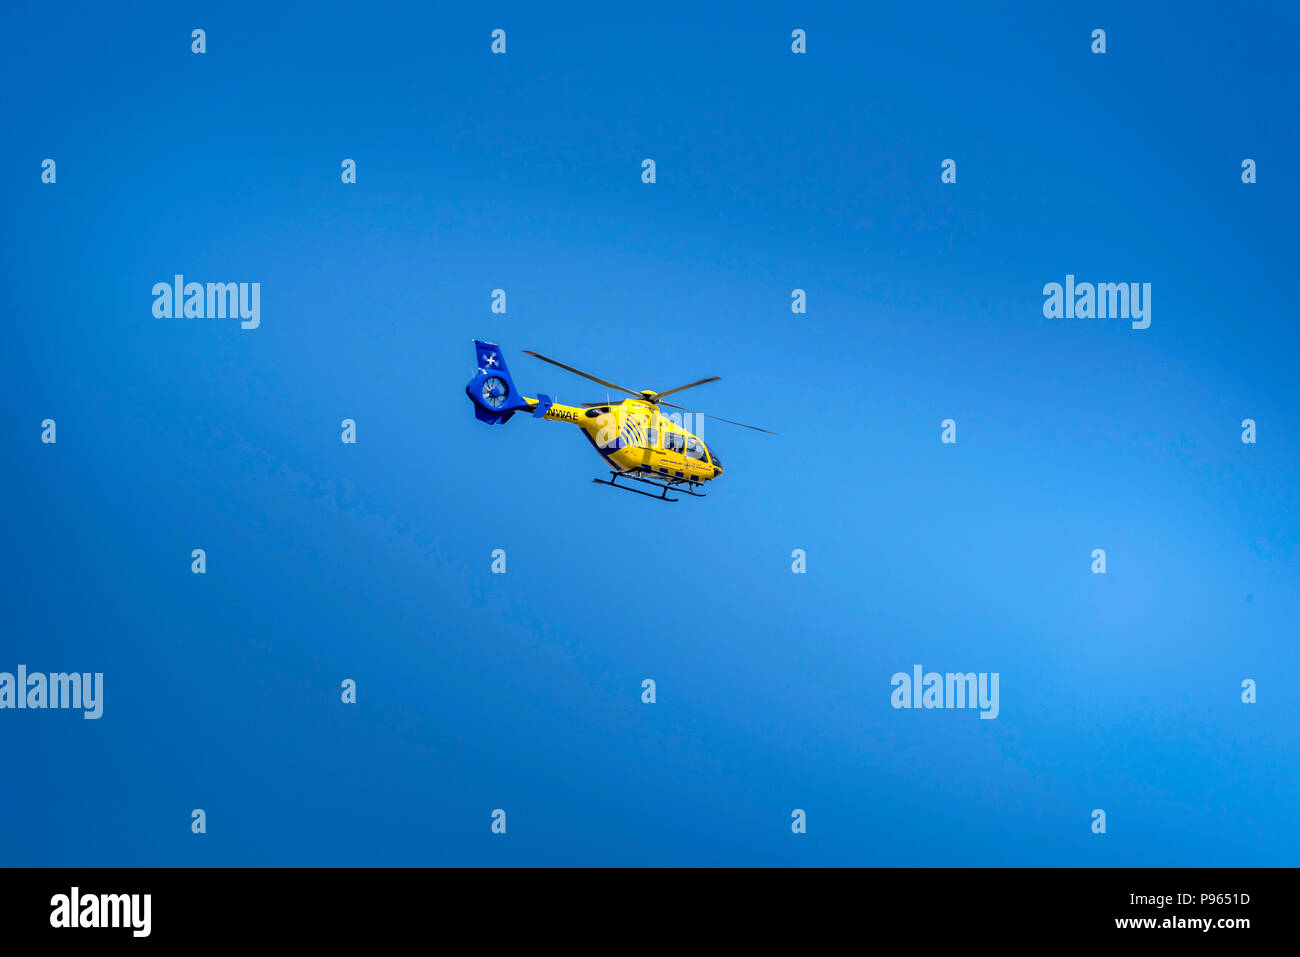 North West Air Ambulance helicopter. - Stock Image